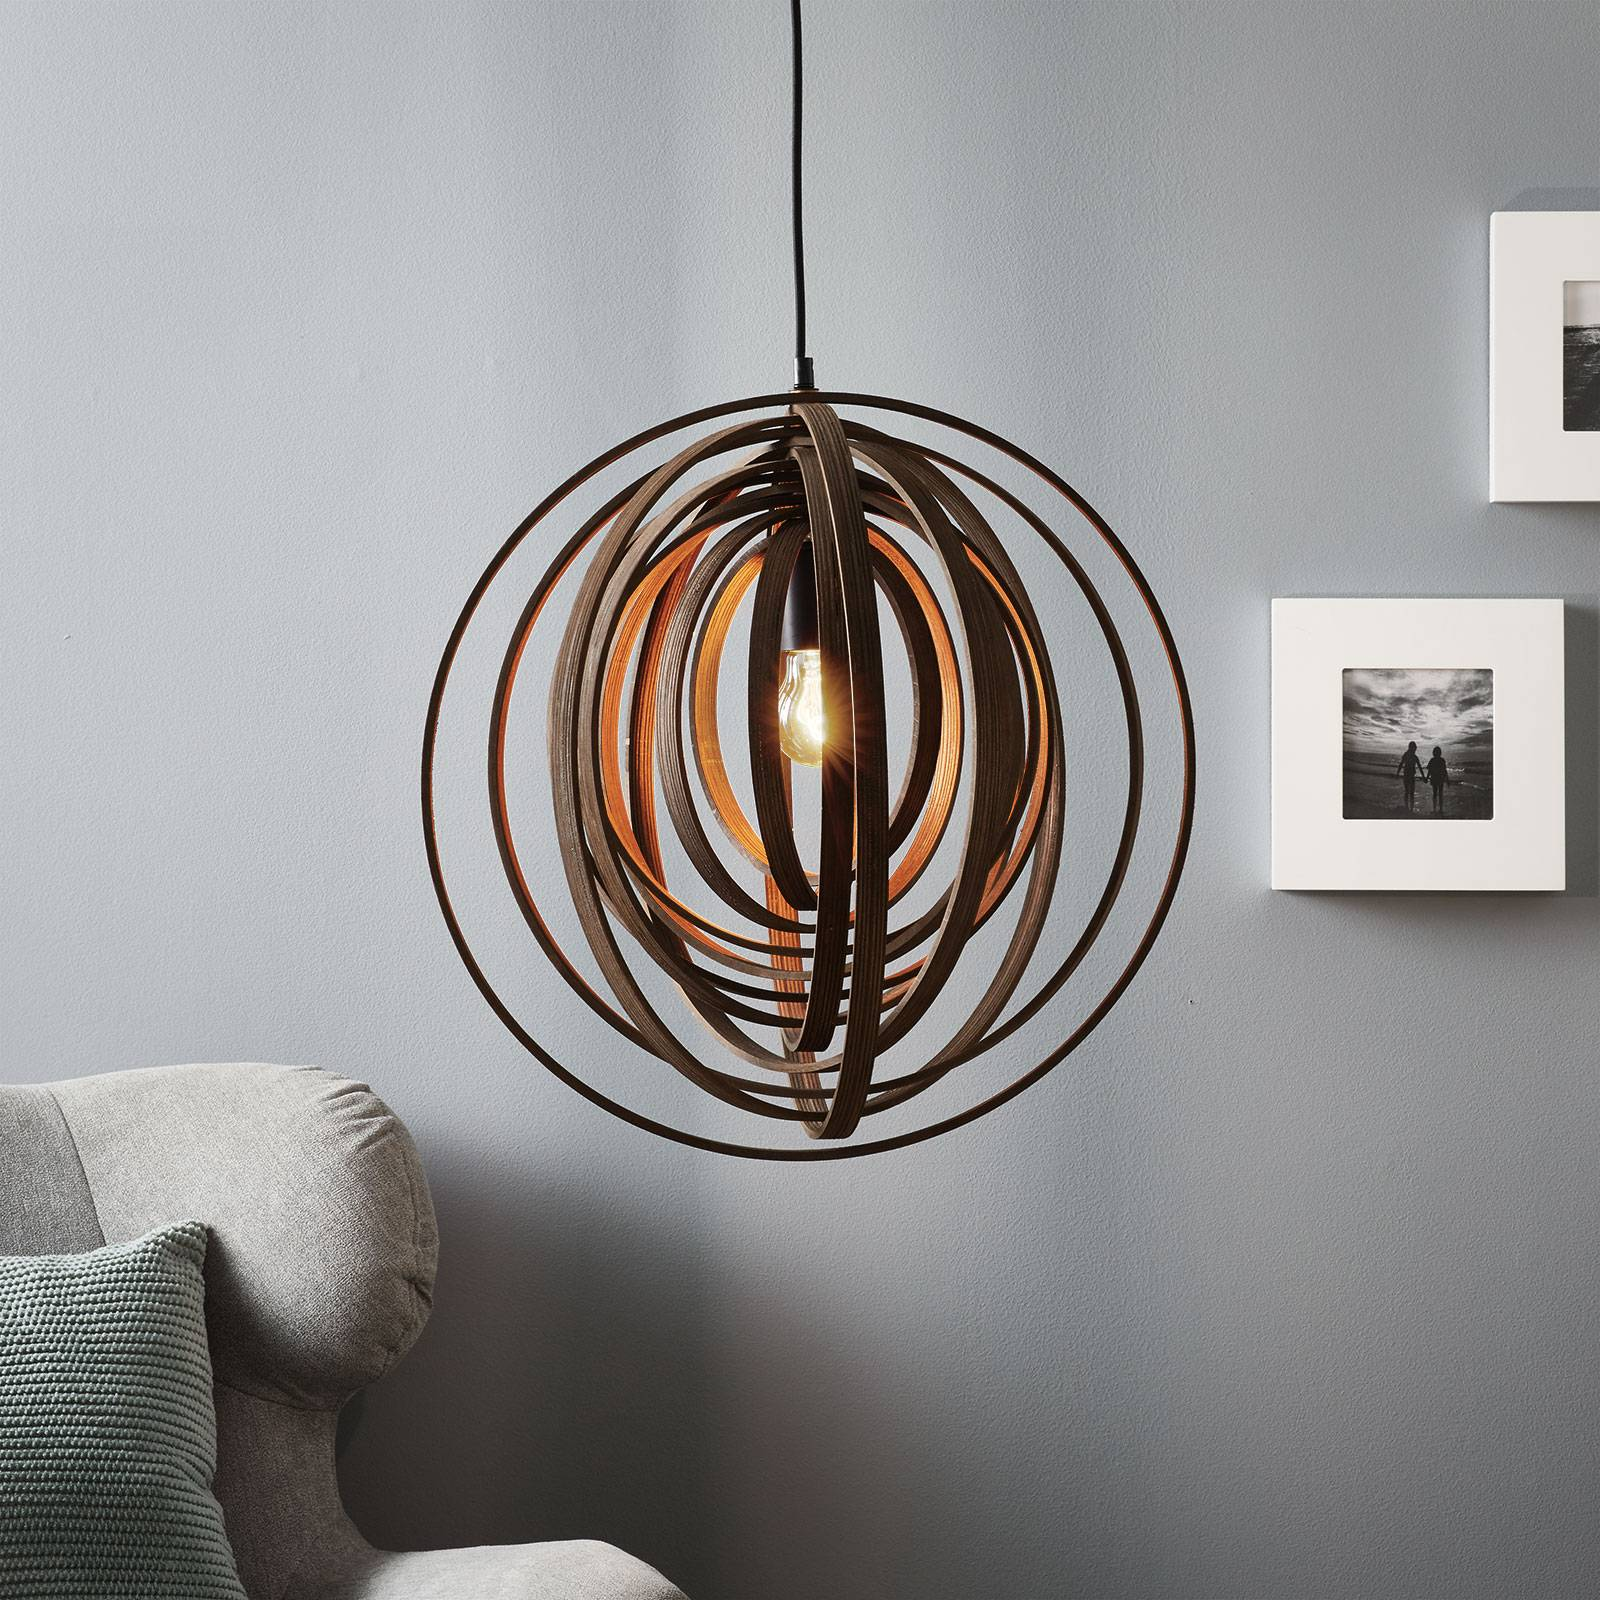 Unusual Boolan hanging light with brown lampshade from Trio Lighting